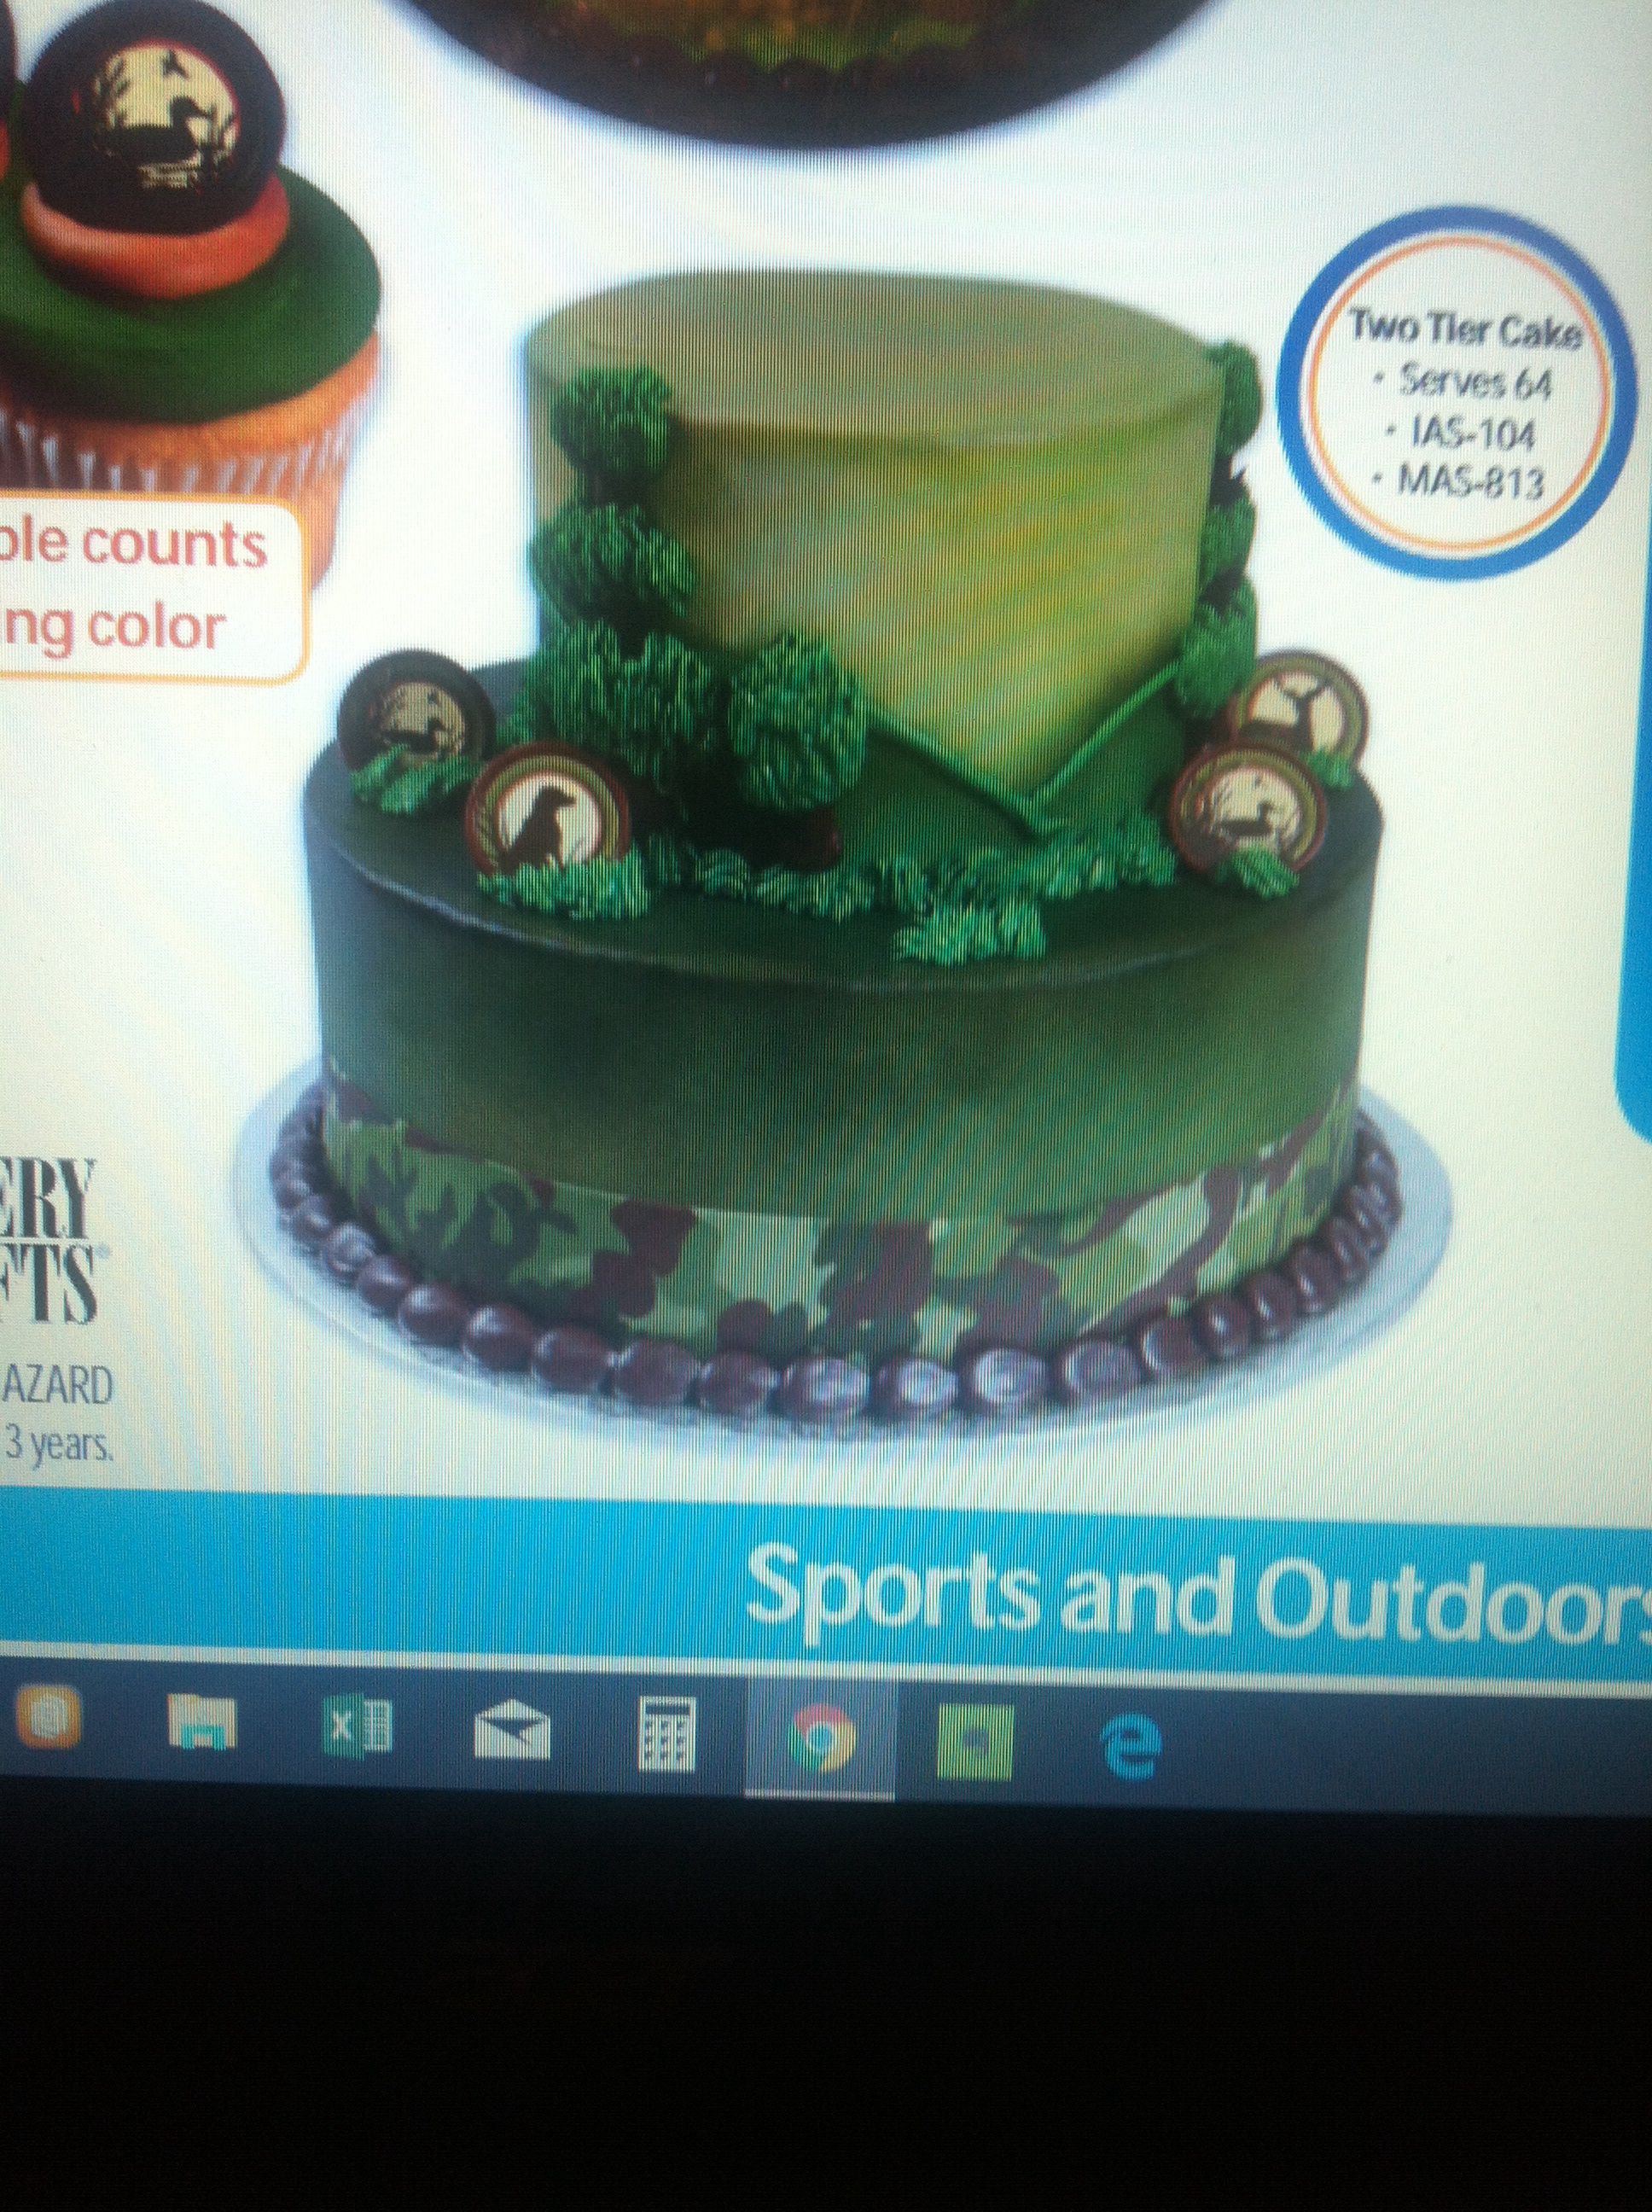 Sensational Live To Hunt Cake 58 For 2 Tiers Walmart Sports Outdoors Birthday Cards Printable Riciscafe Filternl